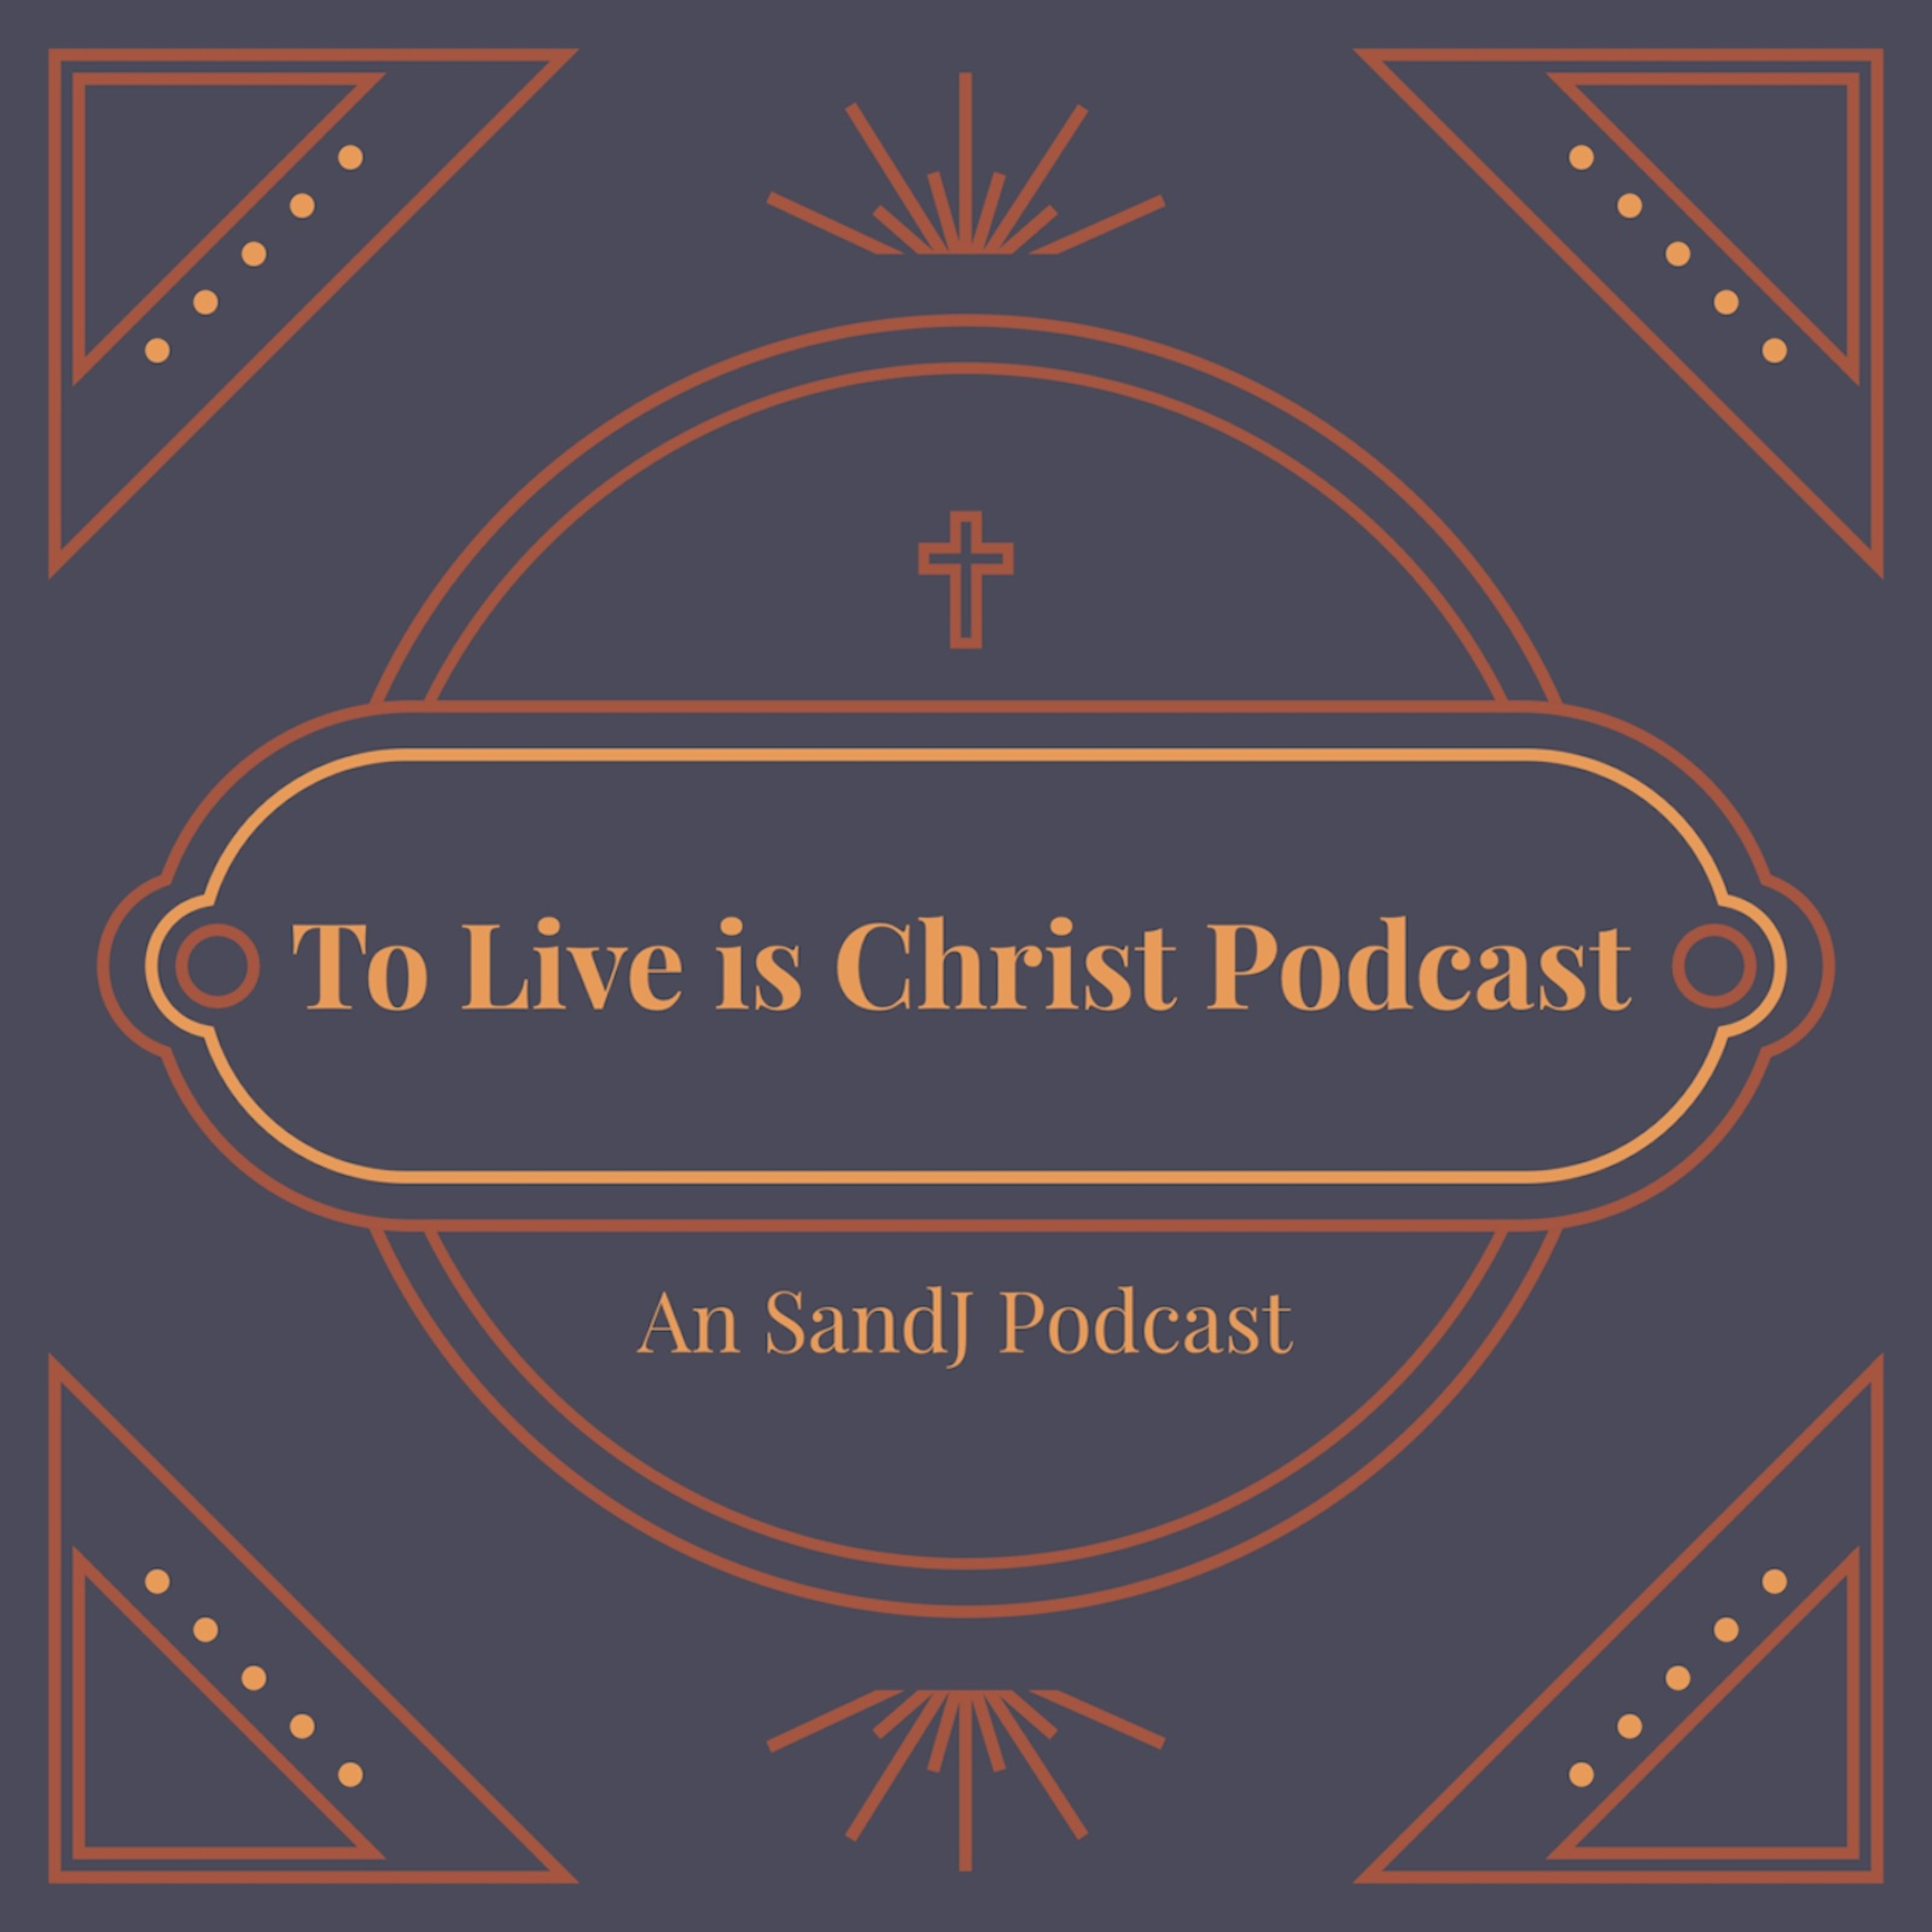 Ep 5 Interview with Jordan Rowe (missionary to Alaska)